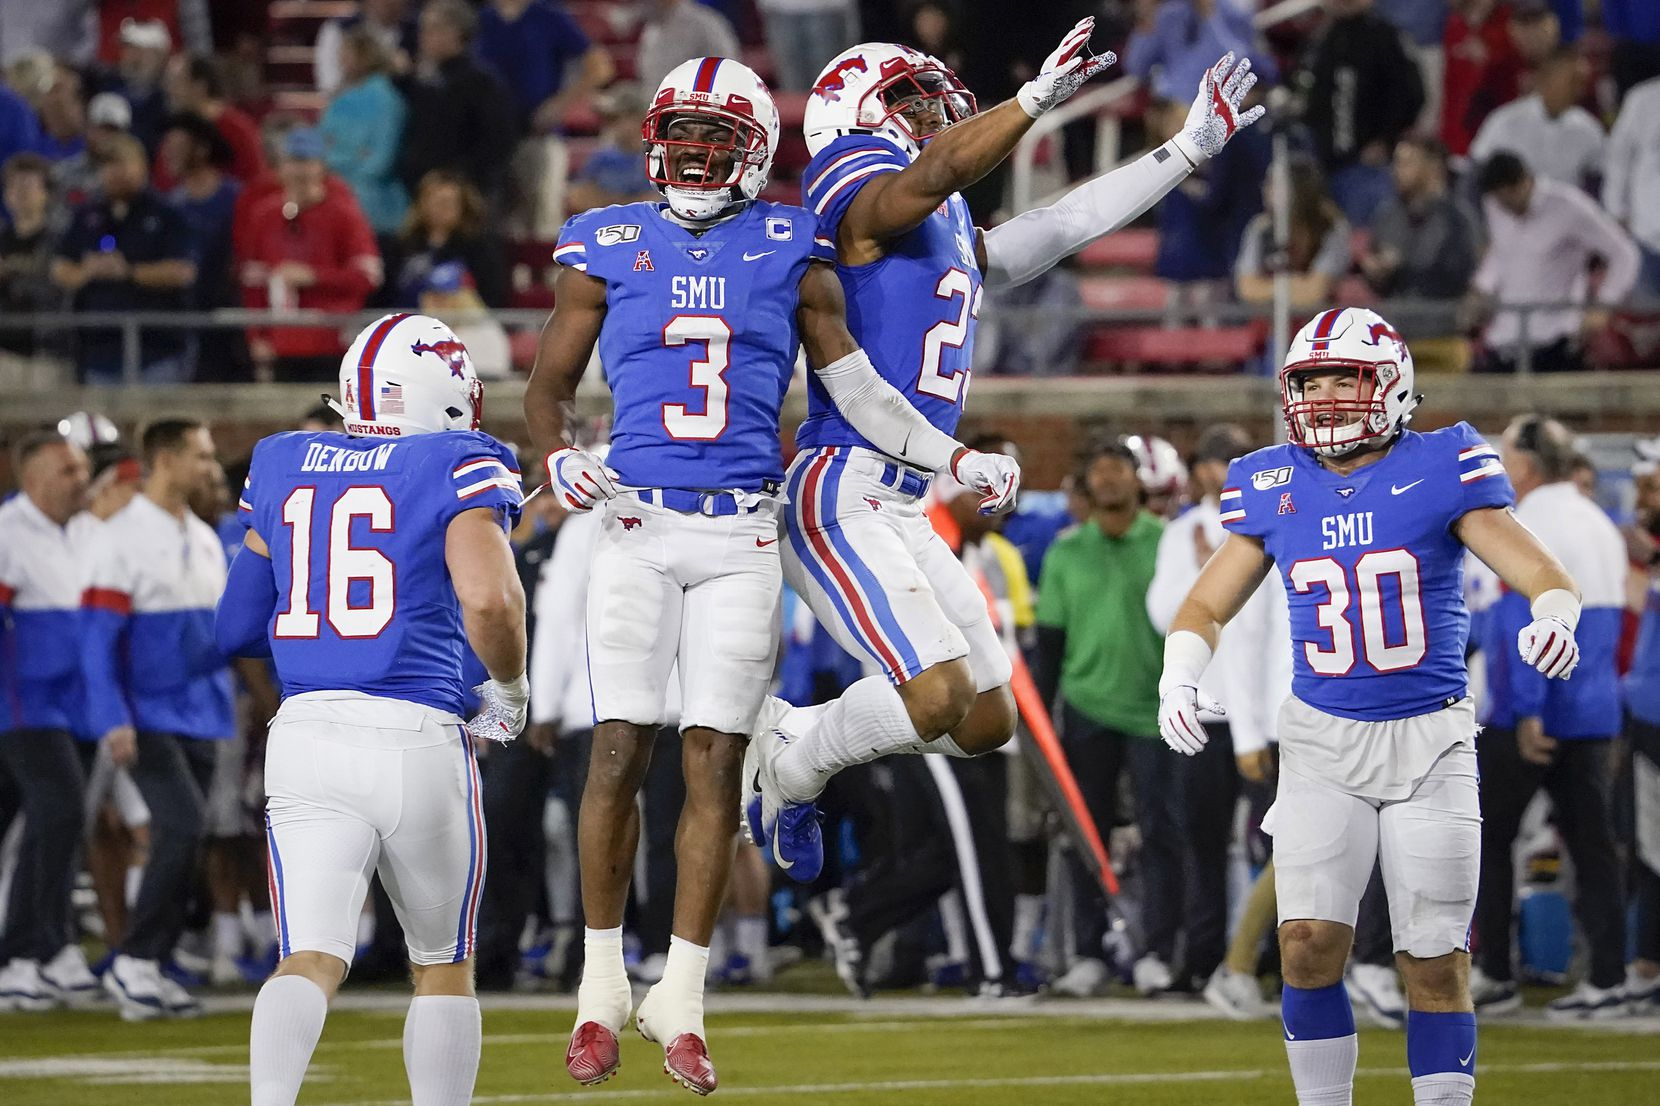 SMU wide receiver James Proche (3) celebrates with safety Rodney Clemons (23) after Proche recovered a Tulane onside kickoff during the second half of an NCAA football game at Ford Stadium on Saturday, Nov. 30, 2019, in Dallas.